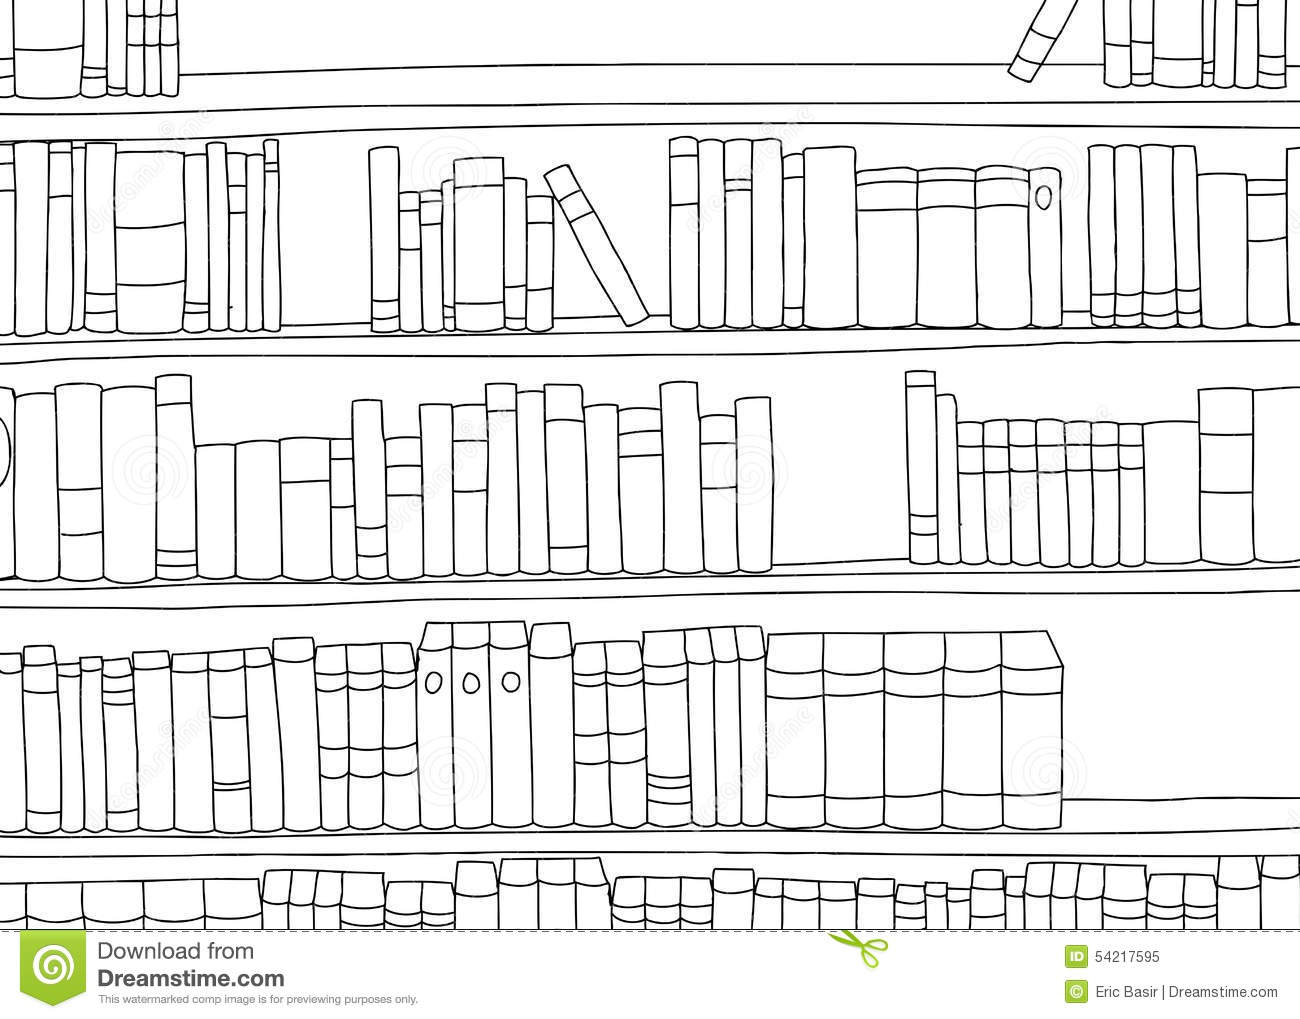 Outline Of Large Shelf With Books Stock Illustration